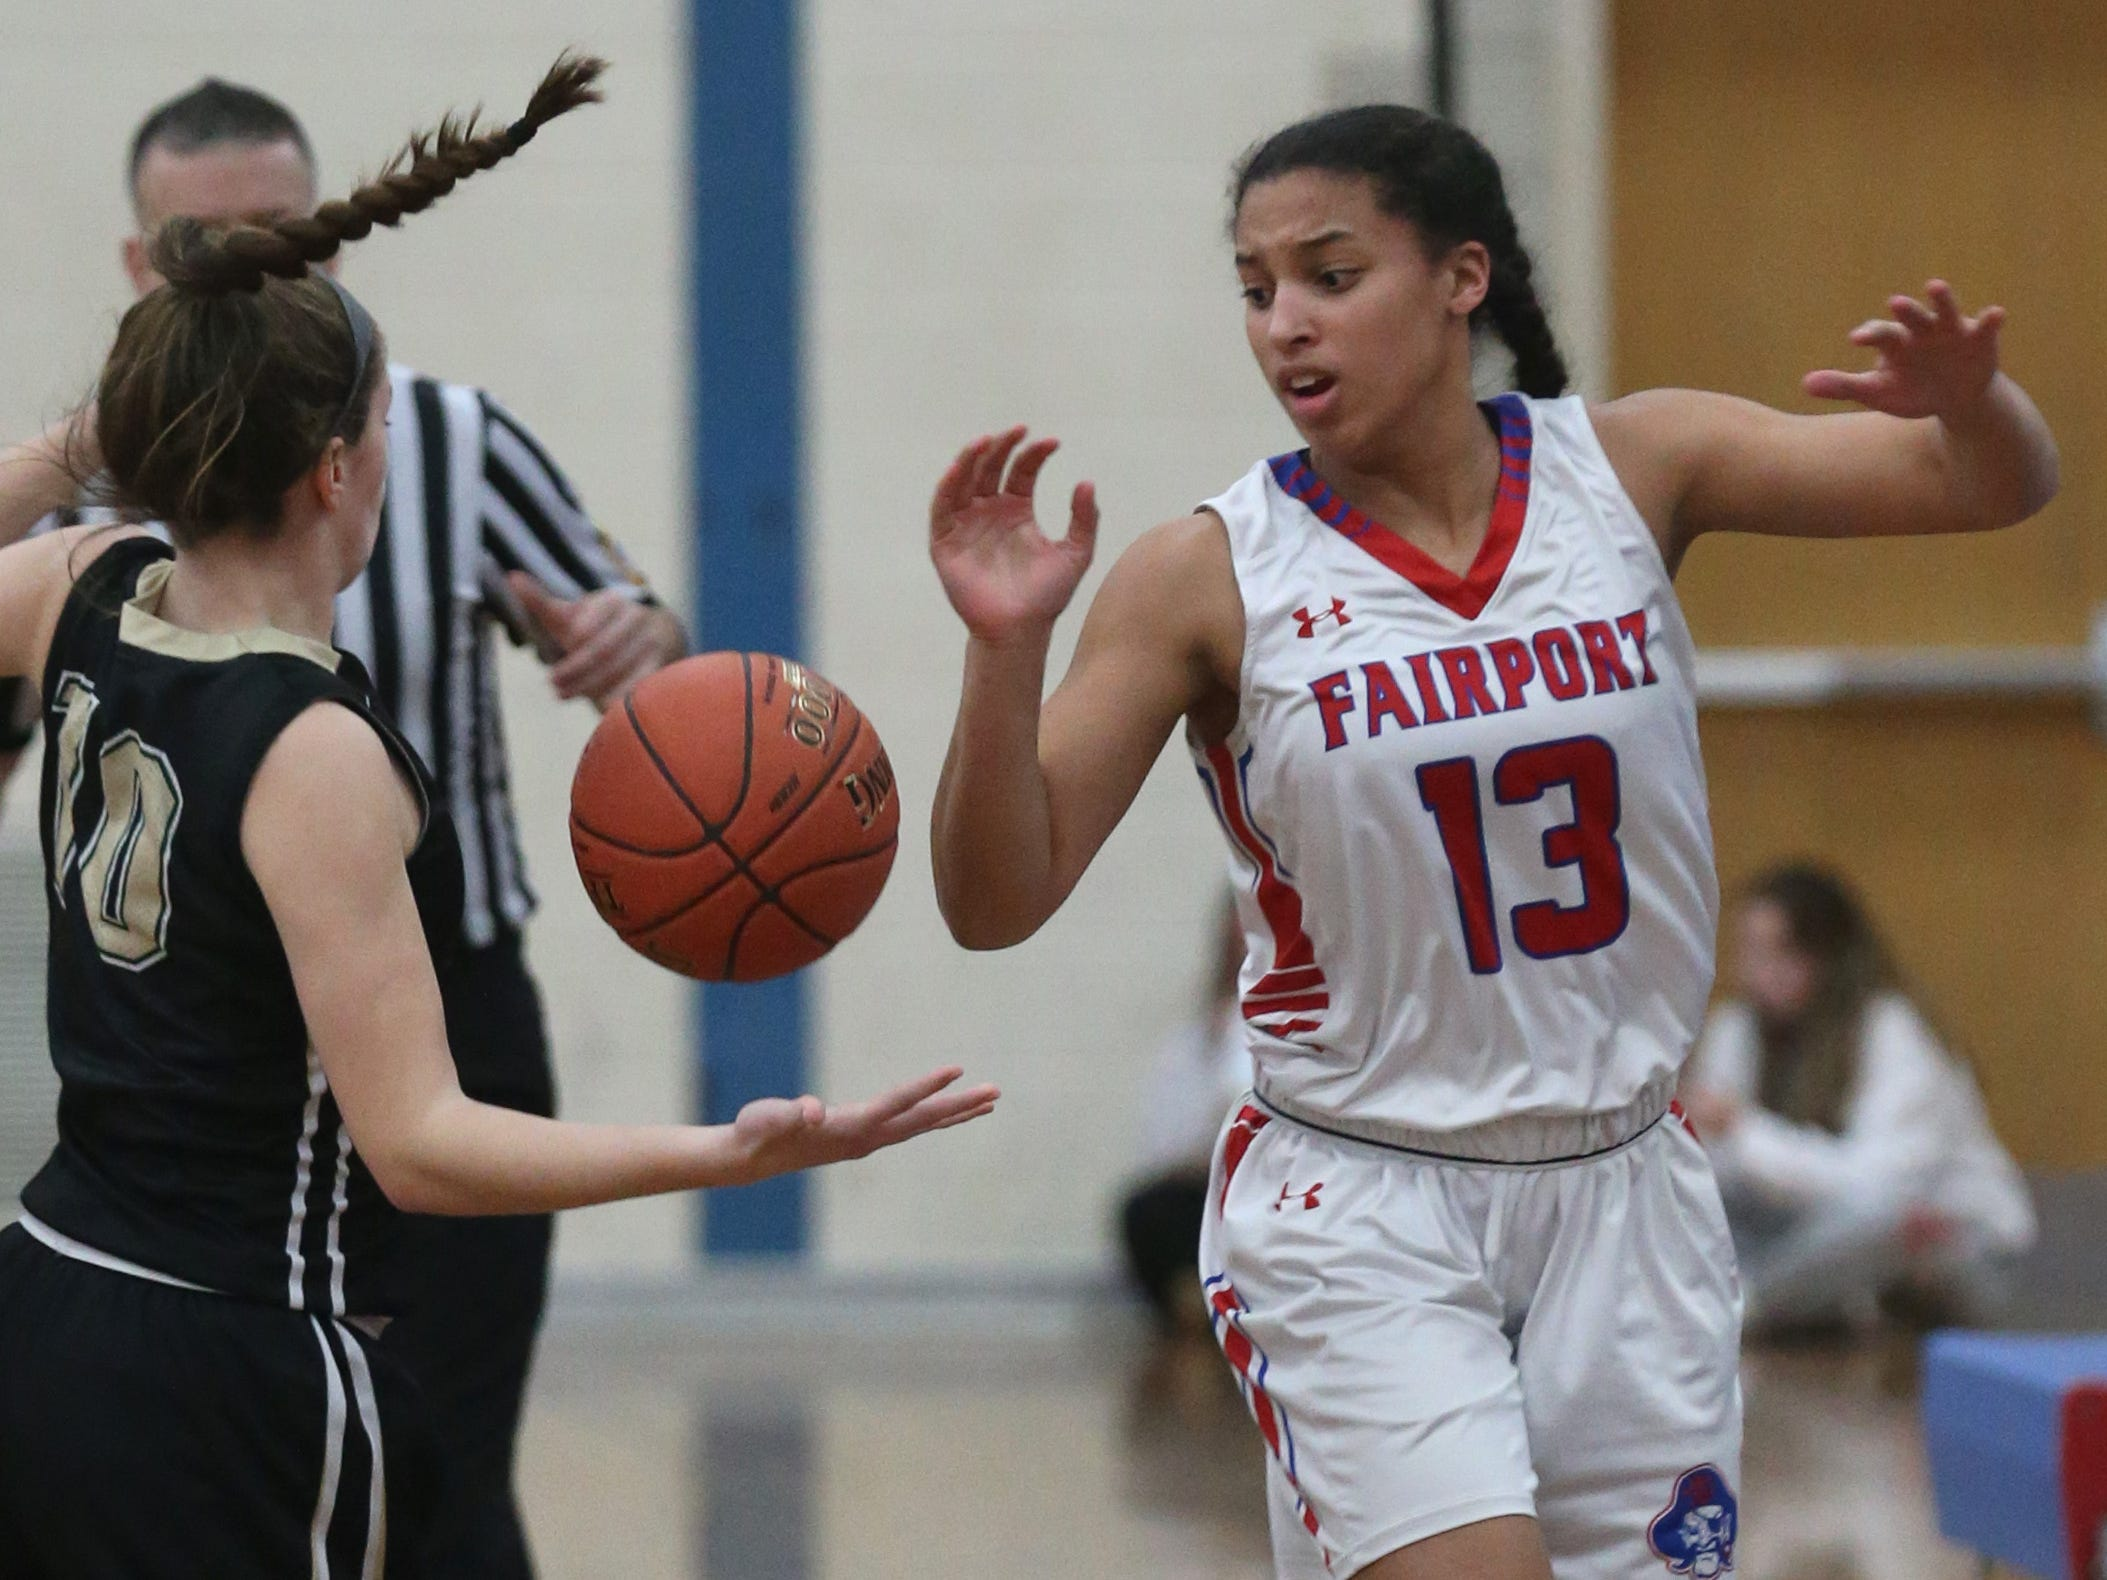 Fairport's Ella Meabon, right, knocks the ball away from Rush-Henrietta's Rachel Crane, left, at half court.